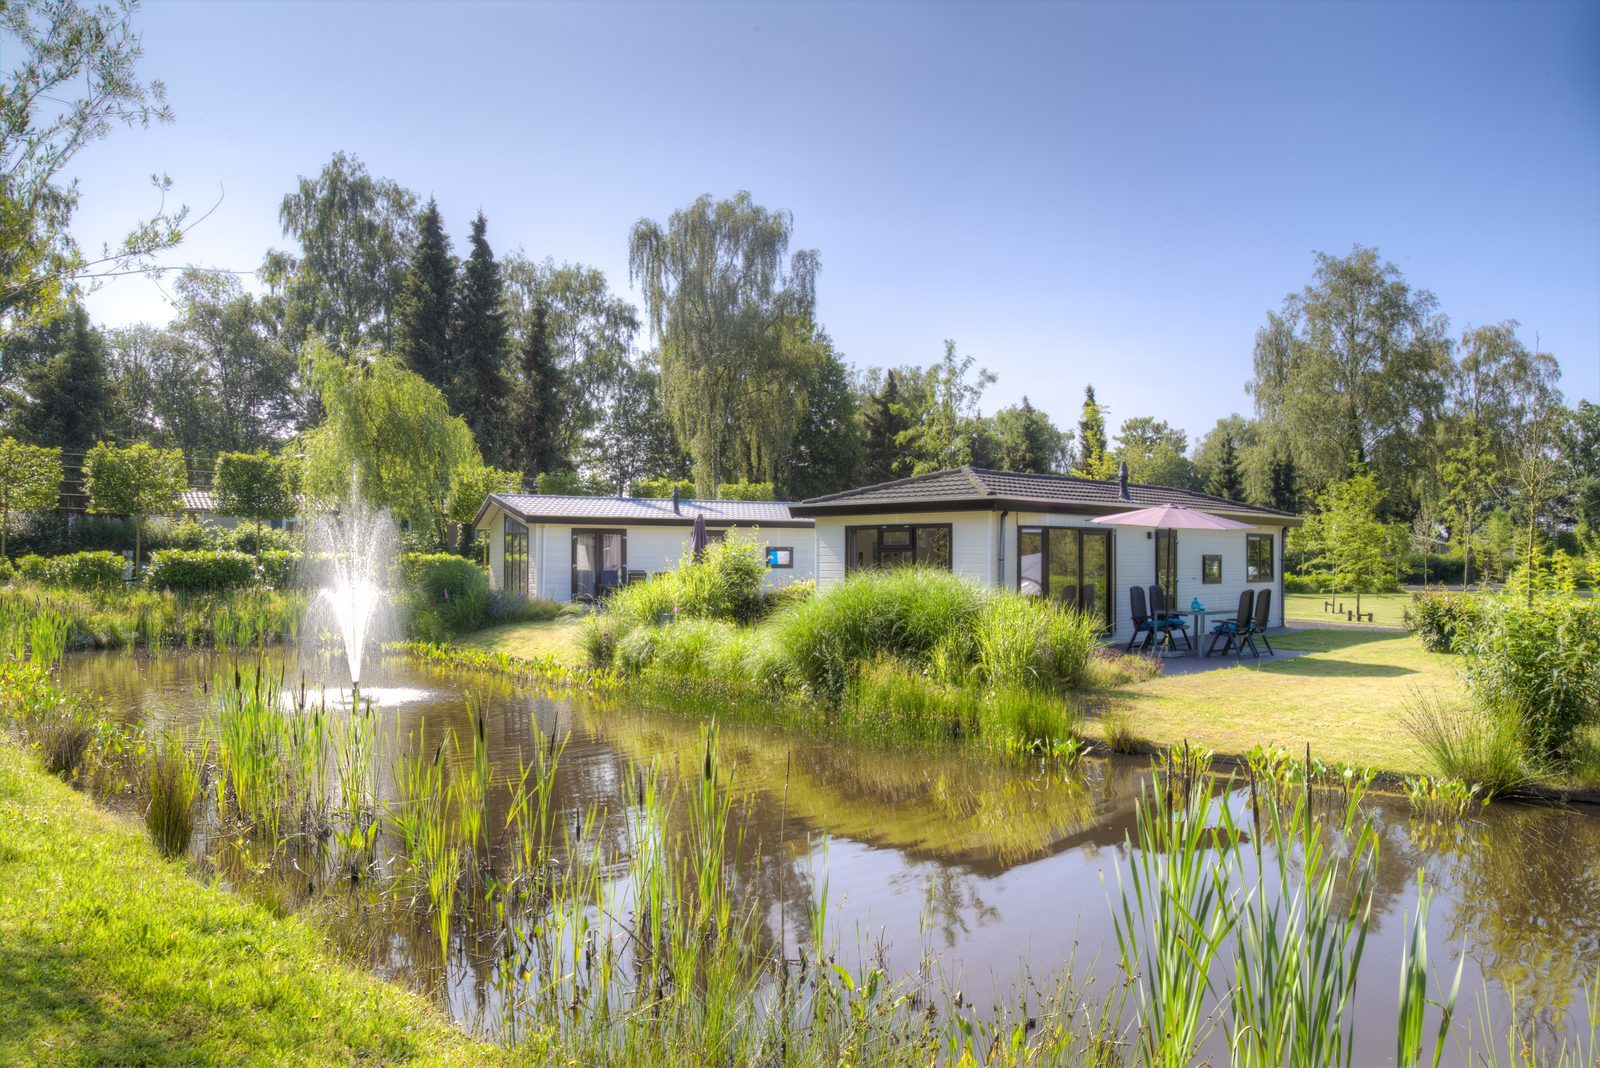 Holiday Park De Wielerbaan (Wageningen)